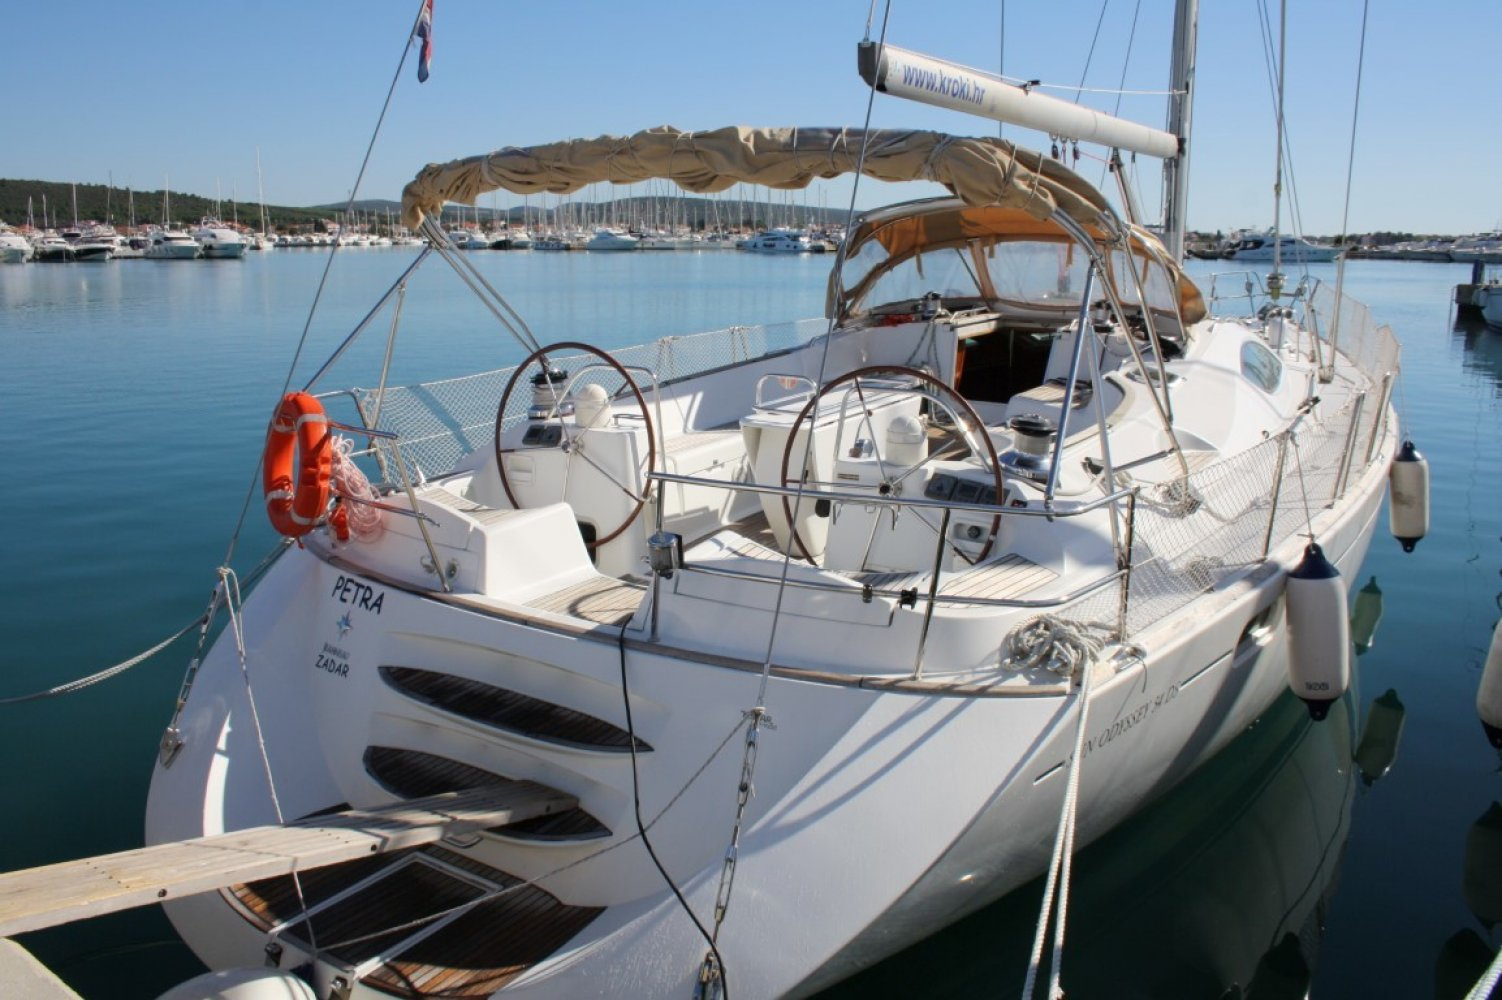 Jeanneau Sun Odyssey 54ds Sailboat For Sale White Whale Yachtbrokers